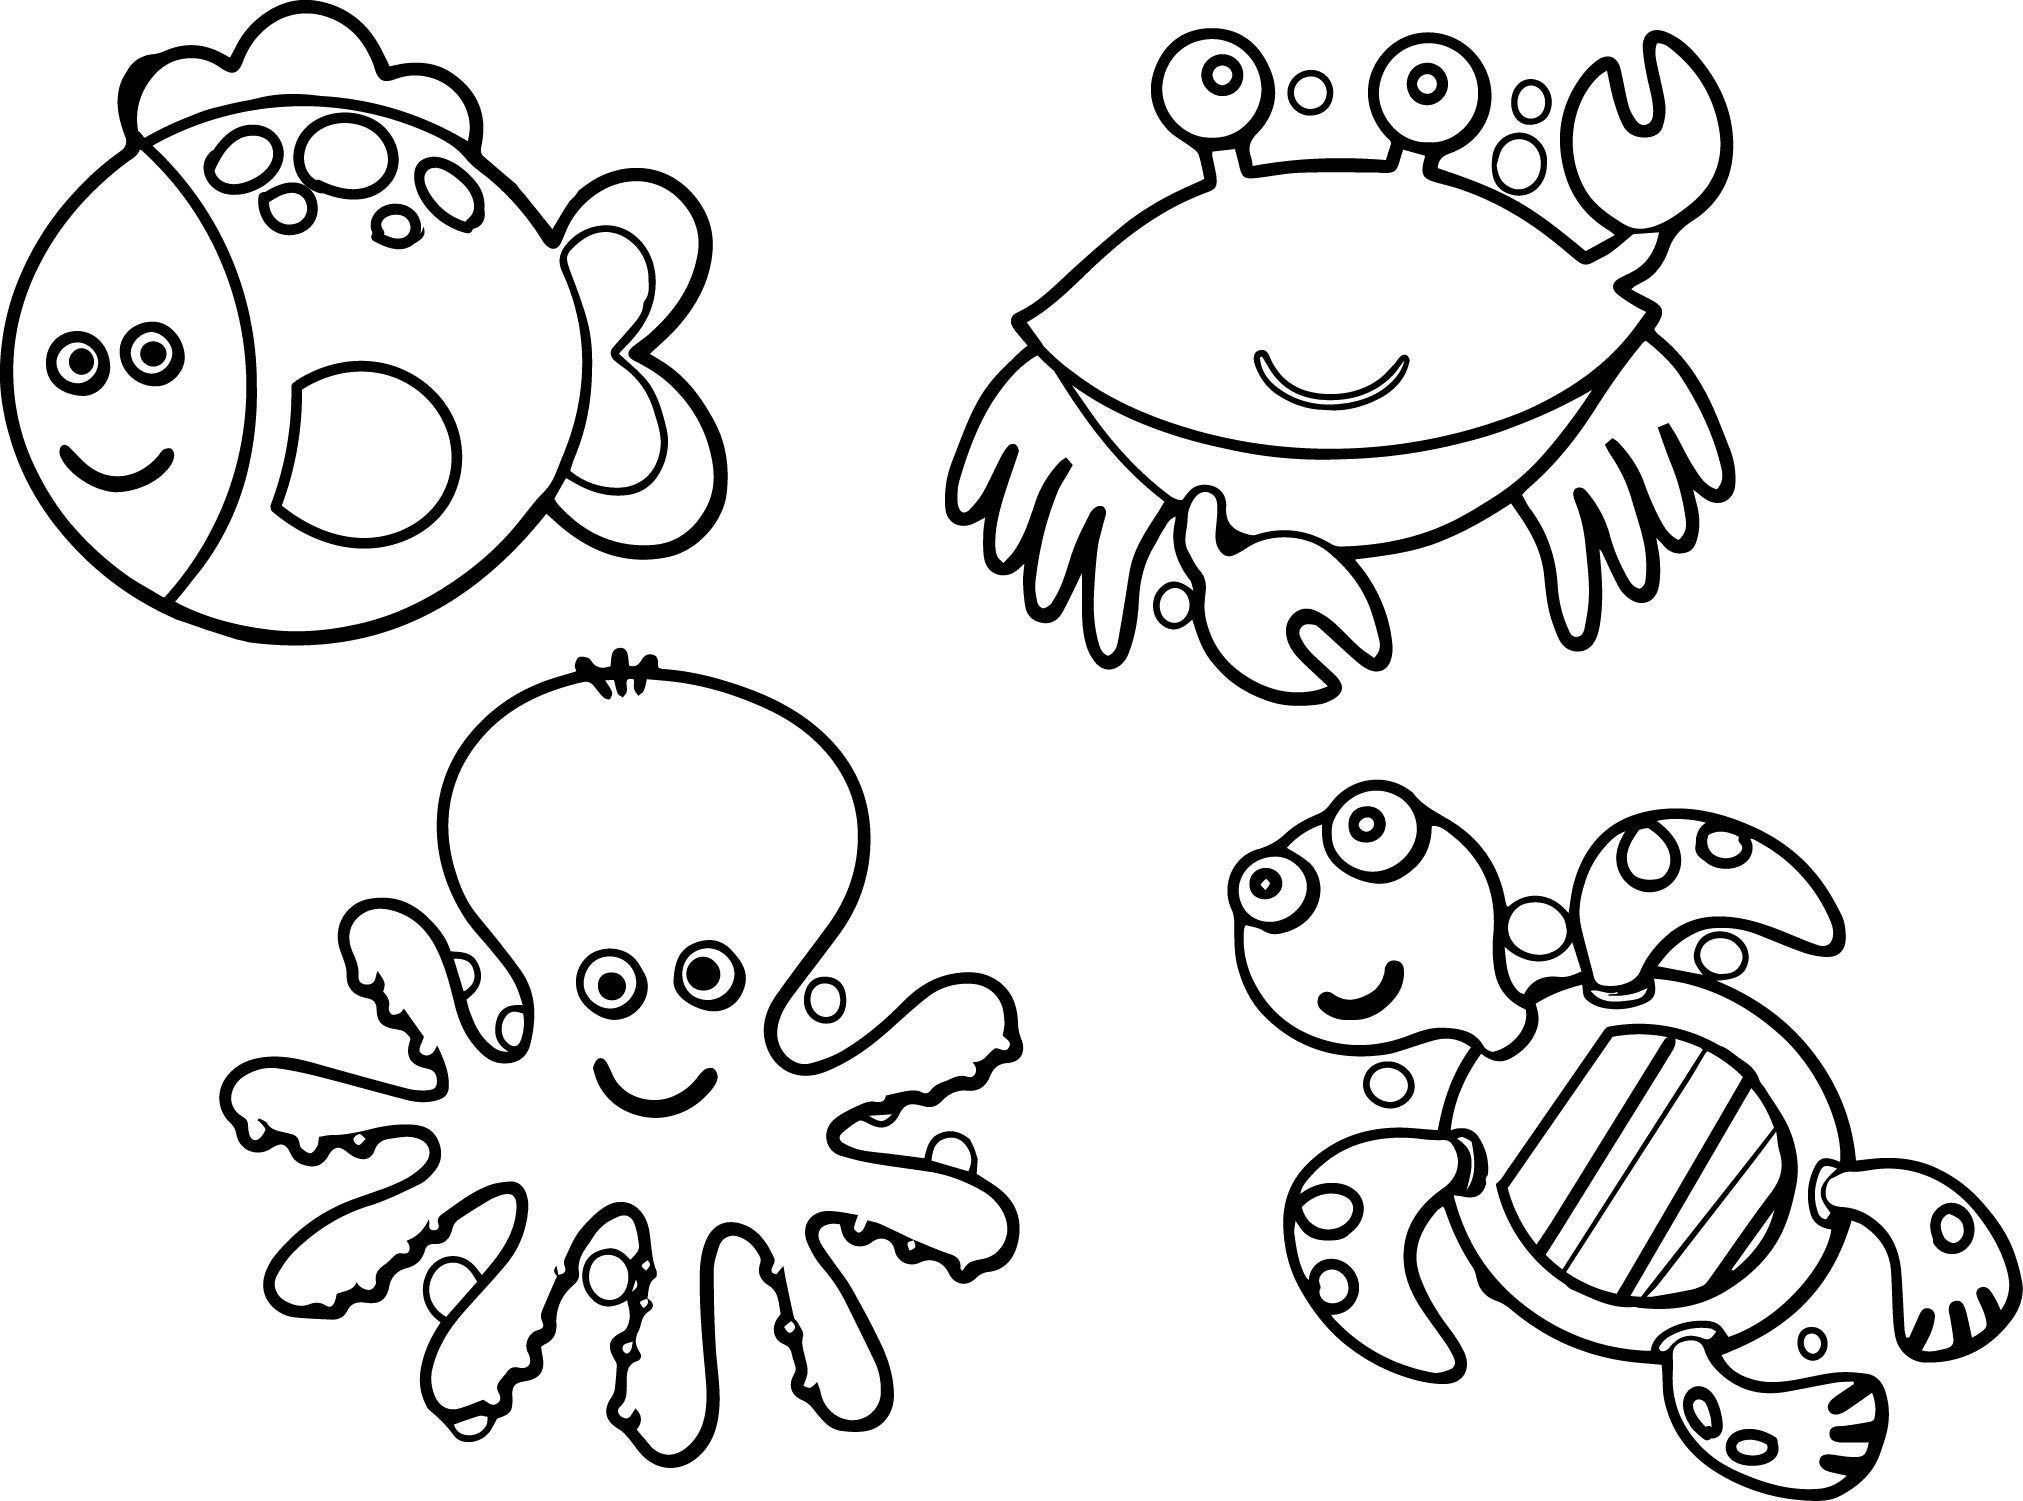 sea life animals coloring pages cute sea animals coloring pages getcoloringpagescom life sea coloring animals pages